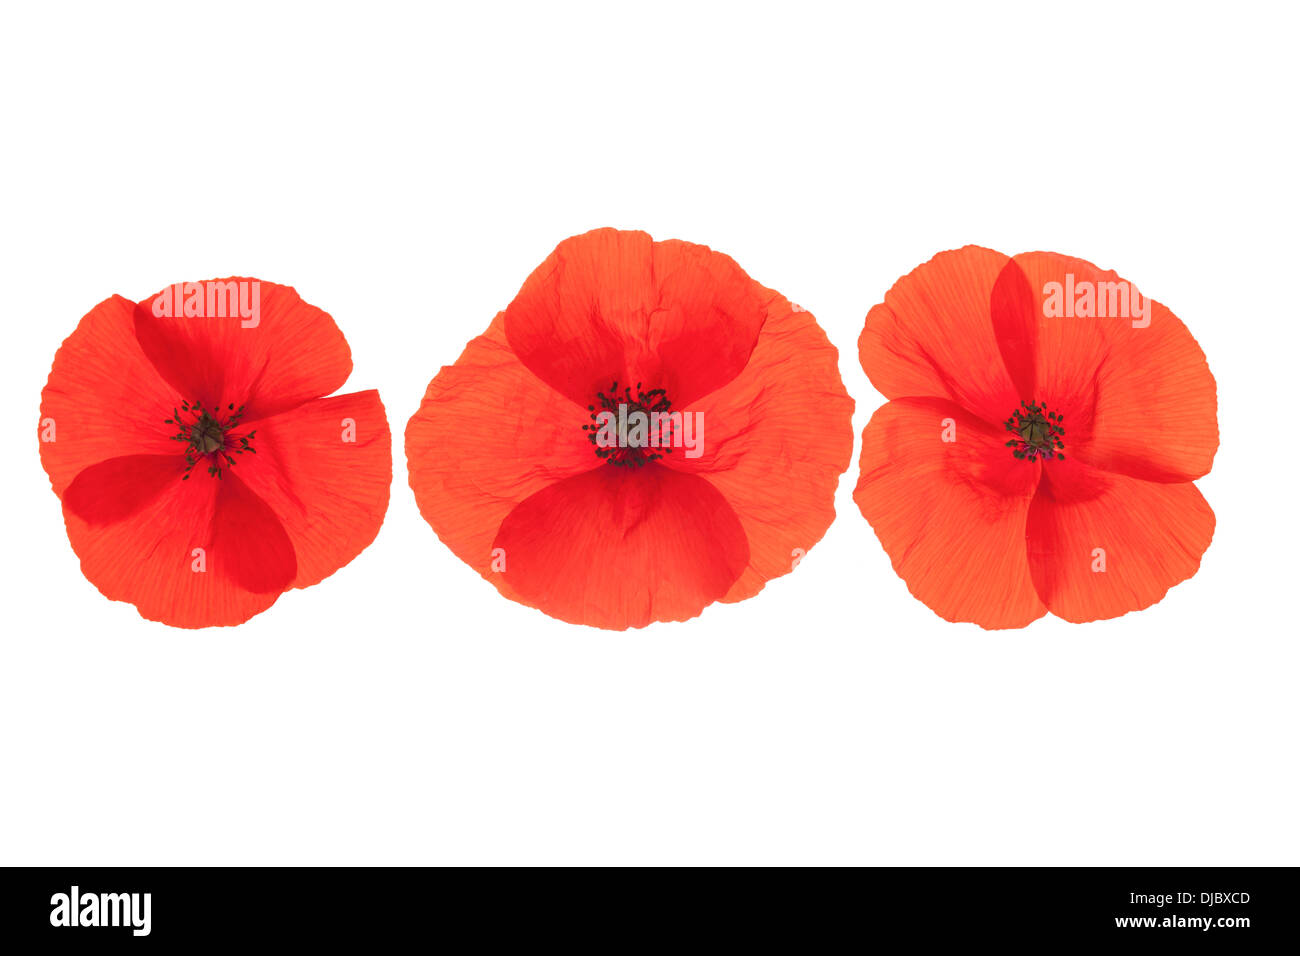 Three Red Corn Poppies Flowers arranged in a line isolated on white background with shallow depth of field. - Stock Image